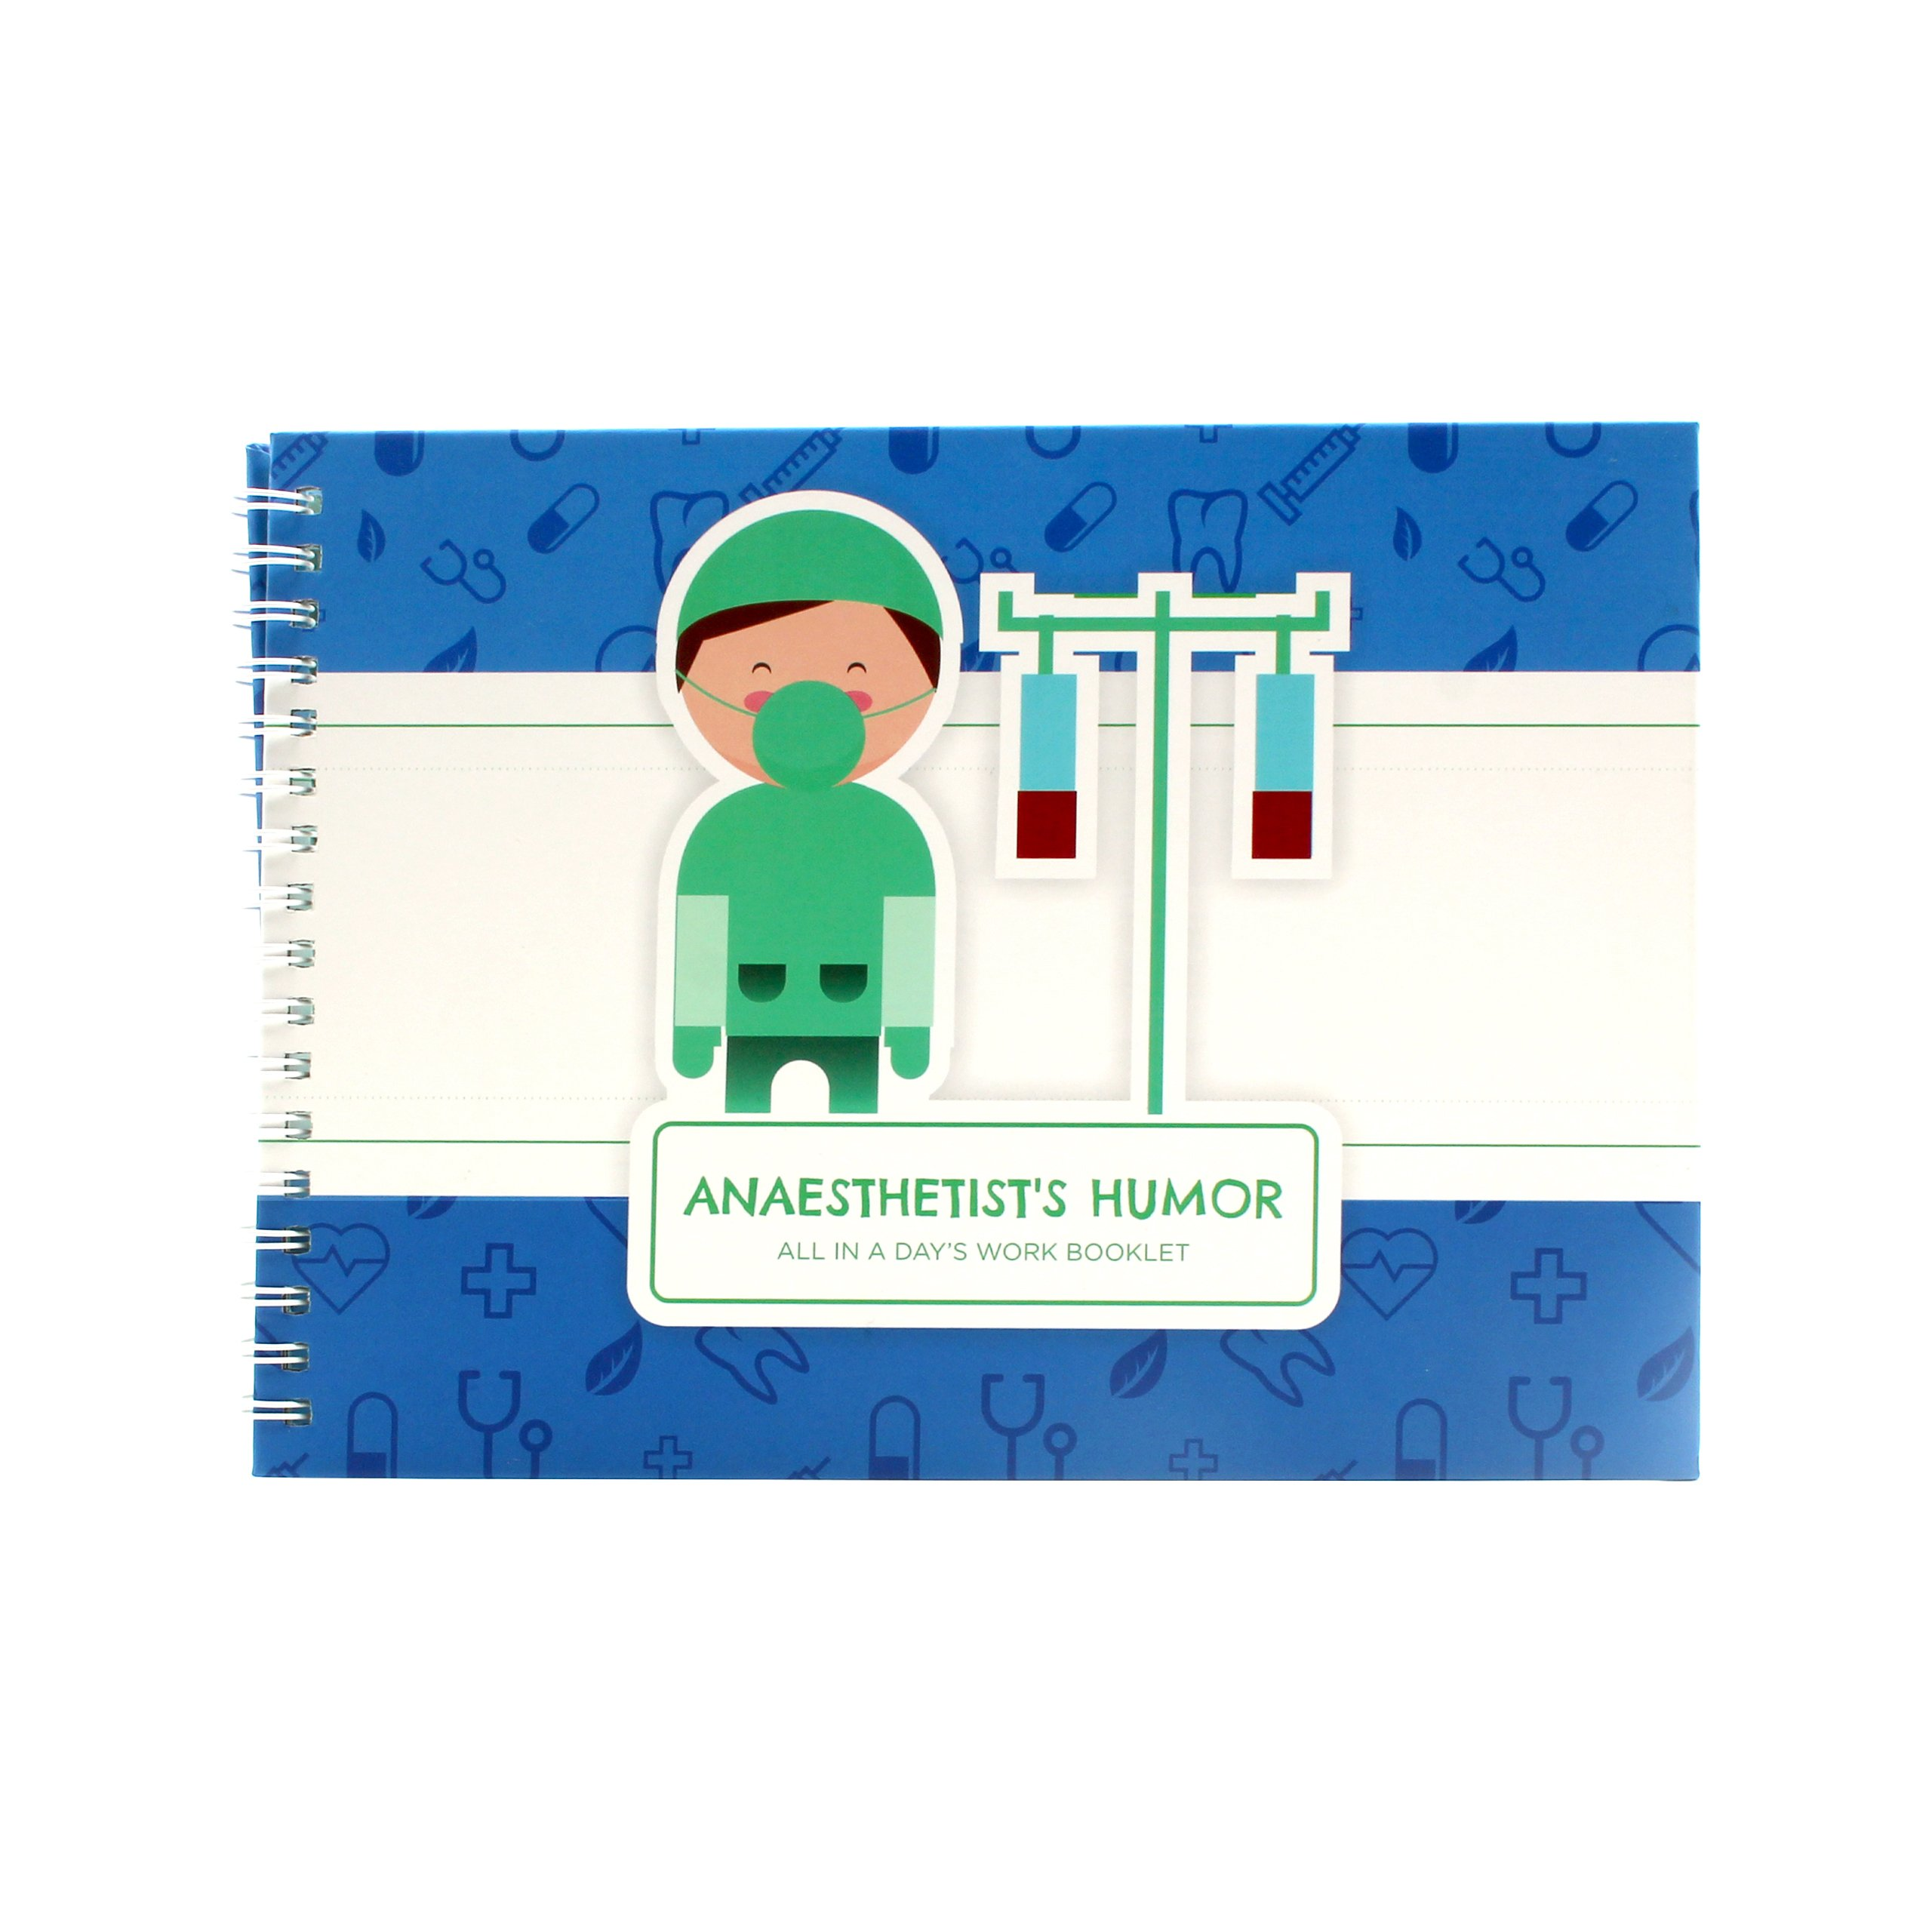 Perfect Anesthesiologist Gifts - Booklet for Your